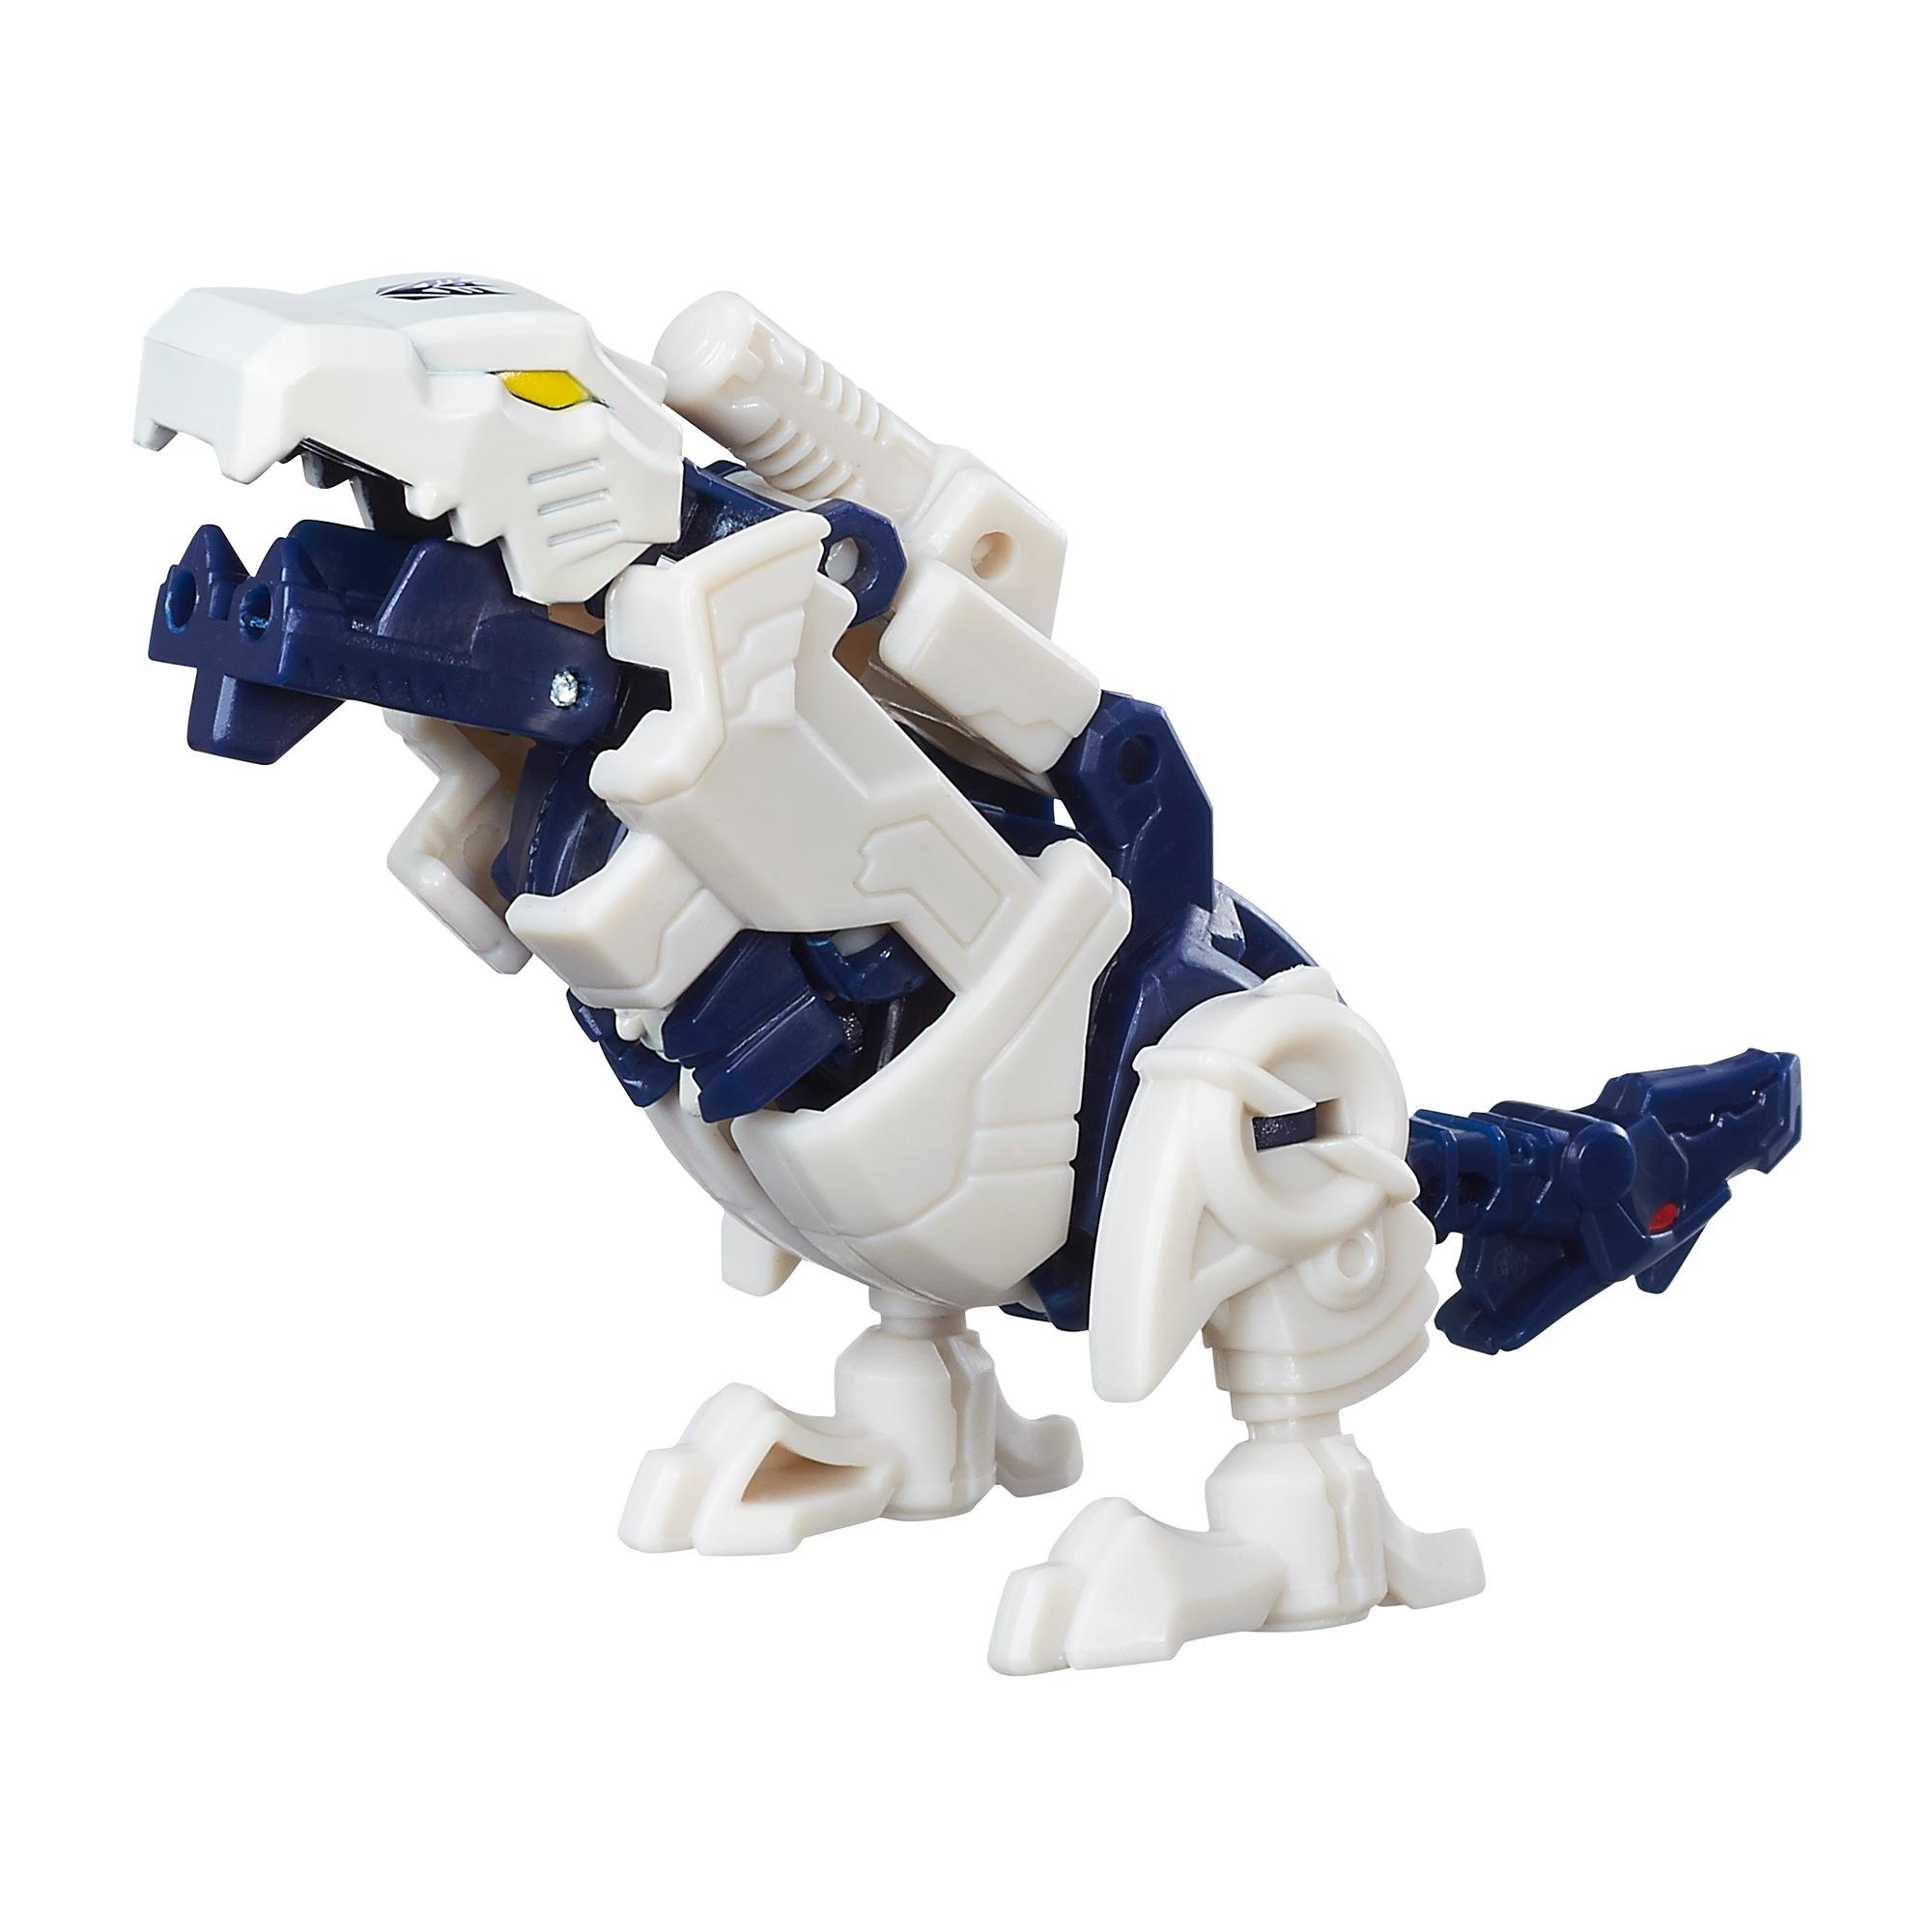 Transformers Generations Titans Return Titan Master Overboard